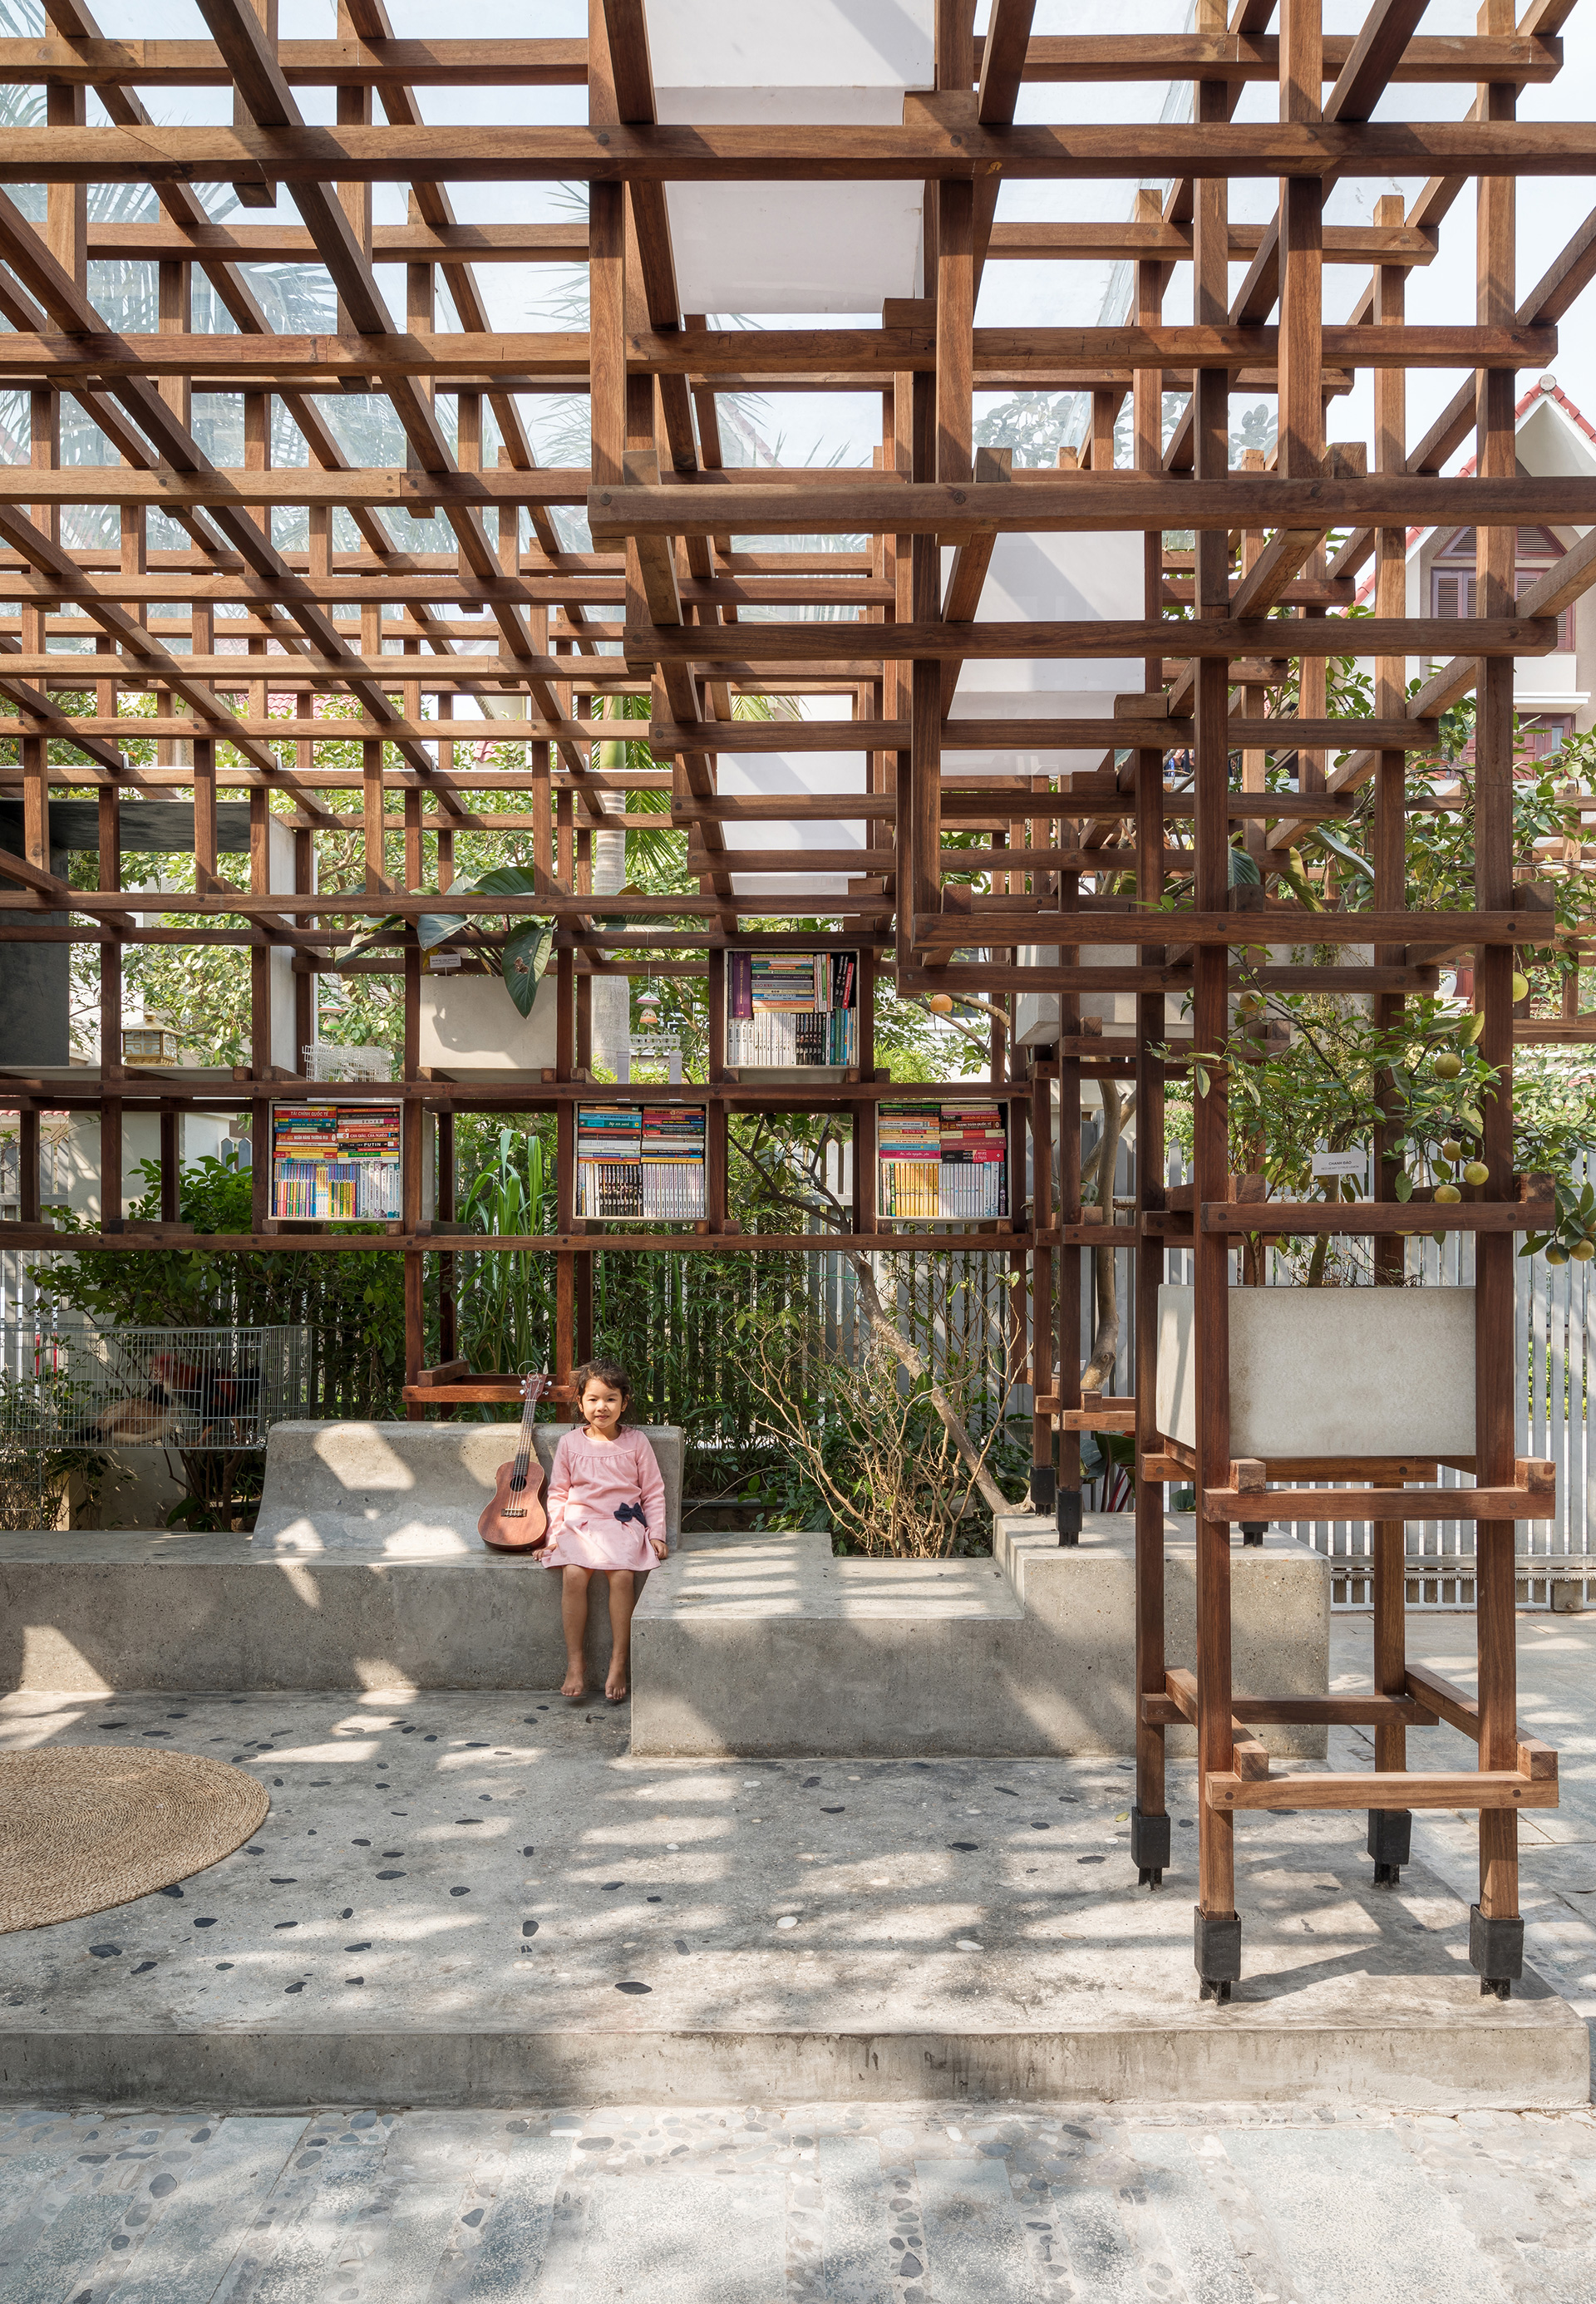 A quaint little stone plaza sits at the heart of the wooden grid | VAC Library | Farming Architects | STIR